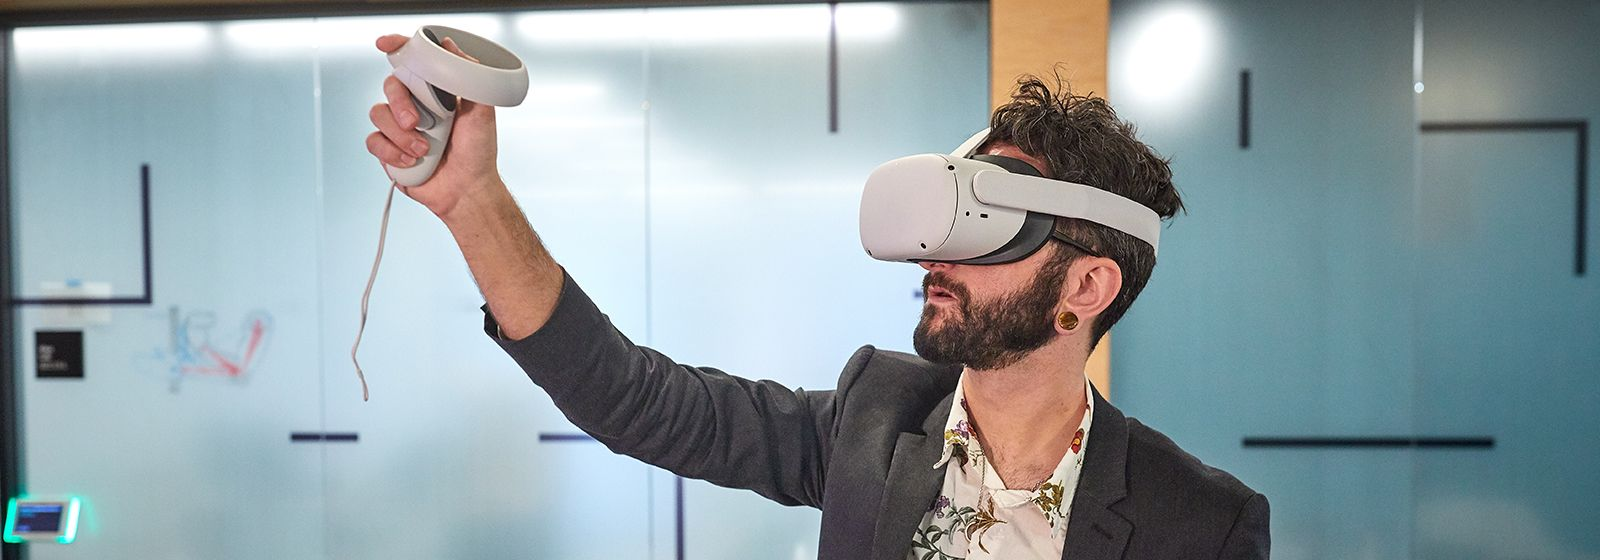 These former video game designers are using VR at Duke Energy